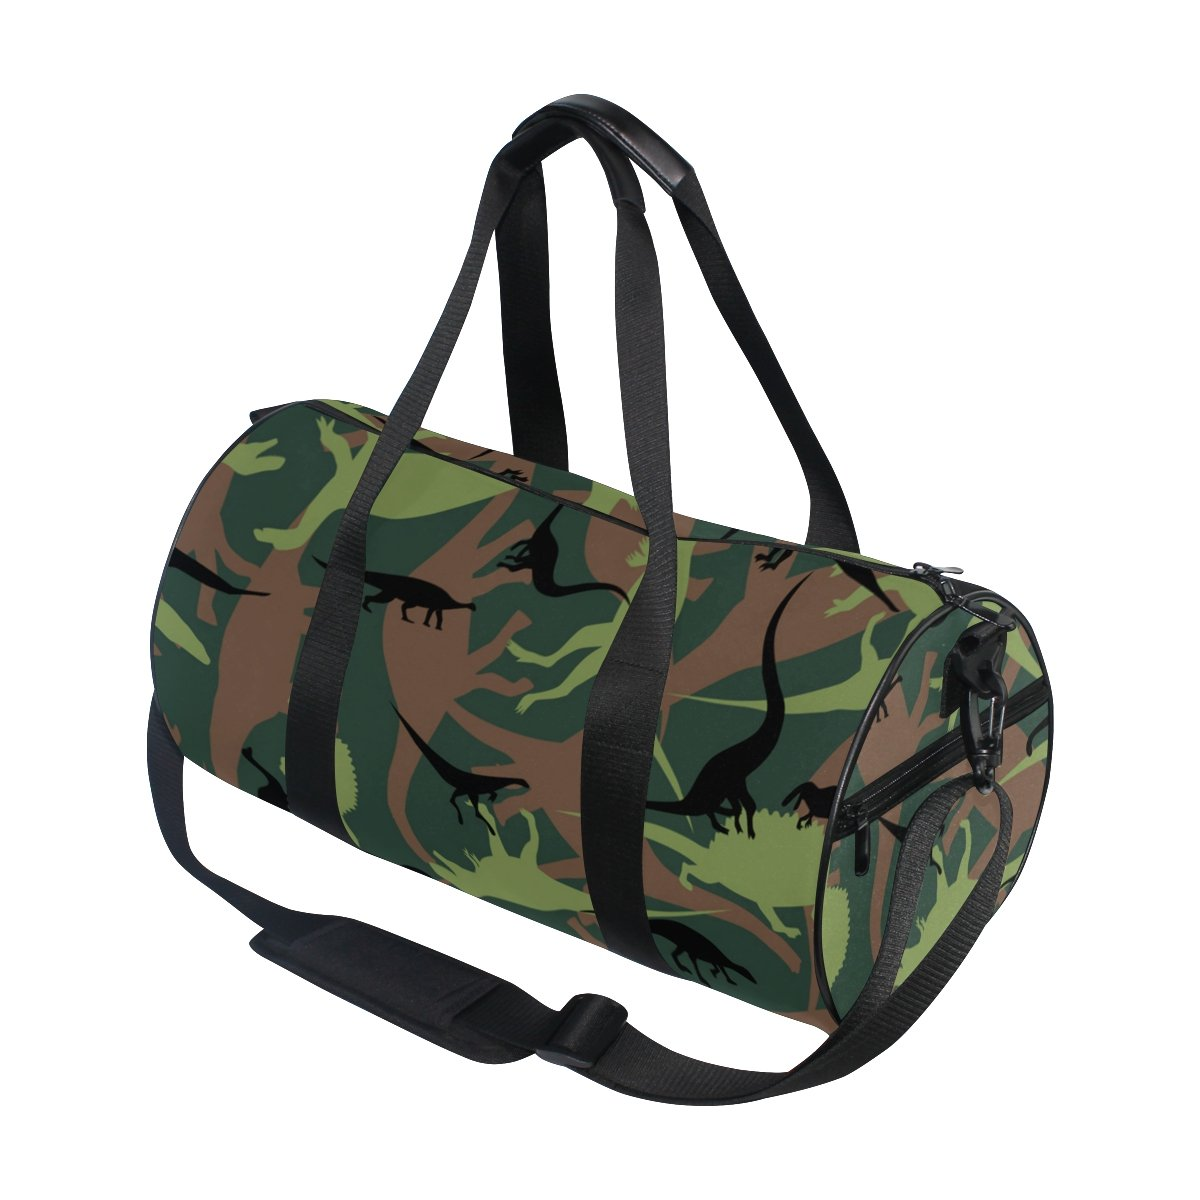 Naanle Dinosaur Camouflage Pattern Army Military Texture Camo Gym bag Sports Travel Duffle Bags for Men Women Boys Girls Kids by Naanle (Image #3)